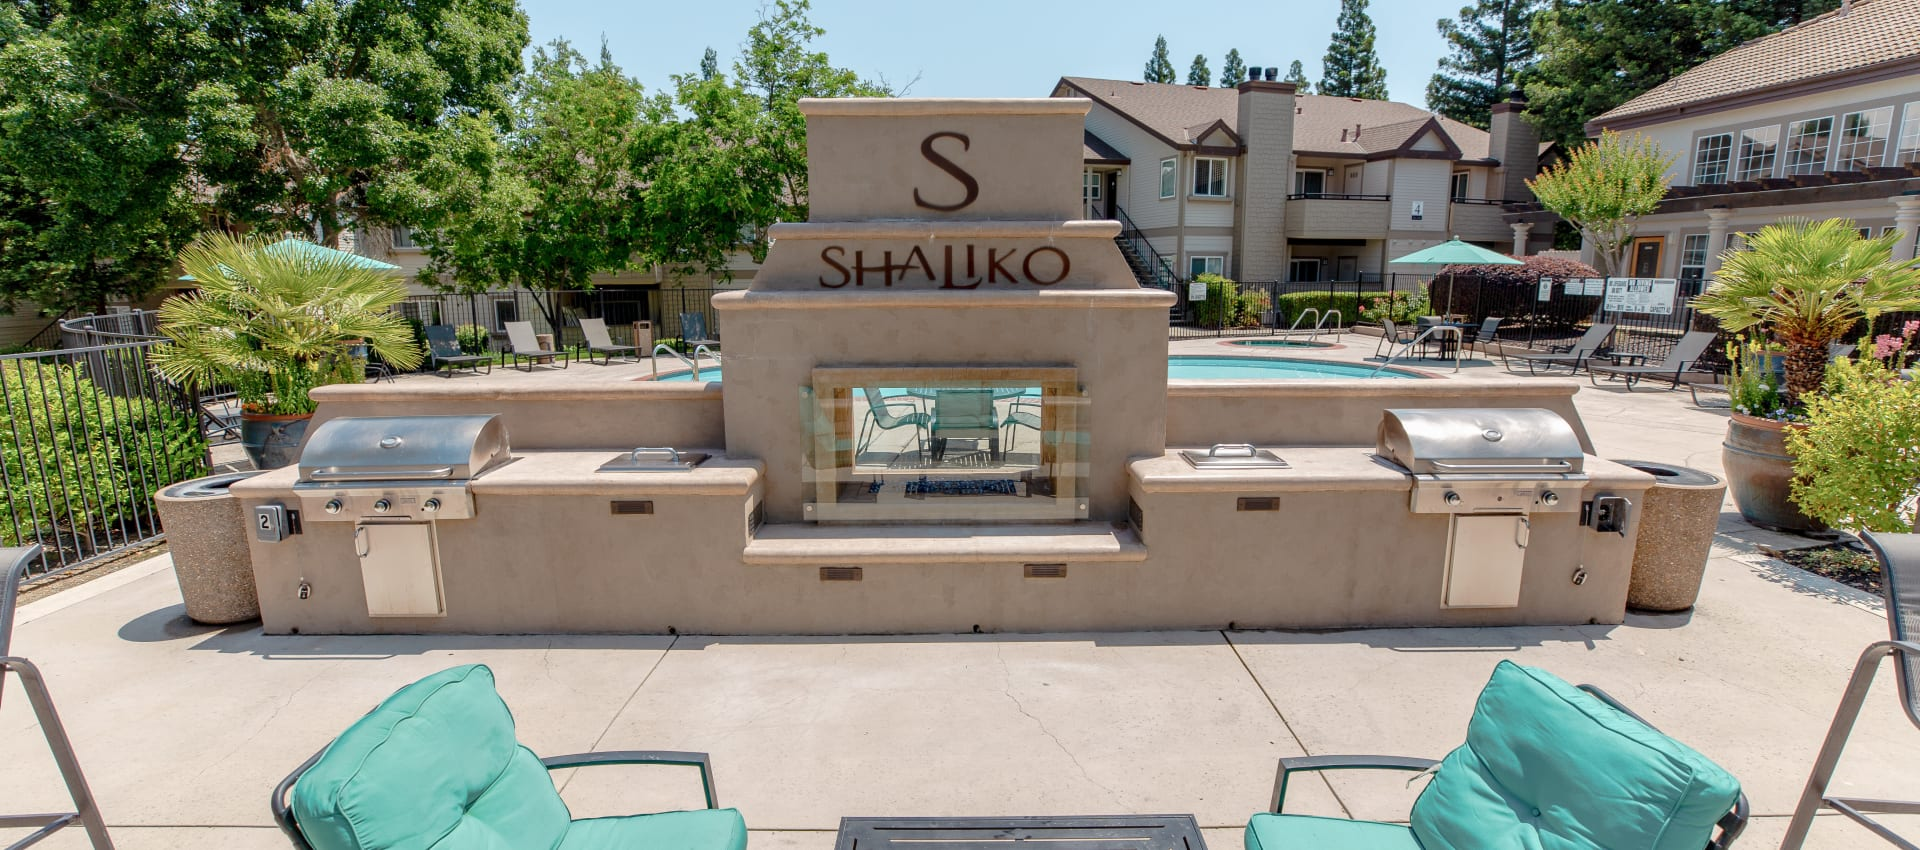 Outdoor fireplace and grills at Shaliko in Rocklin, California.